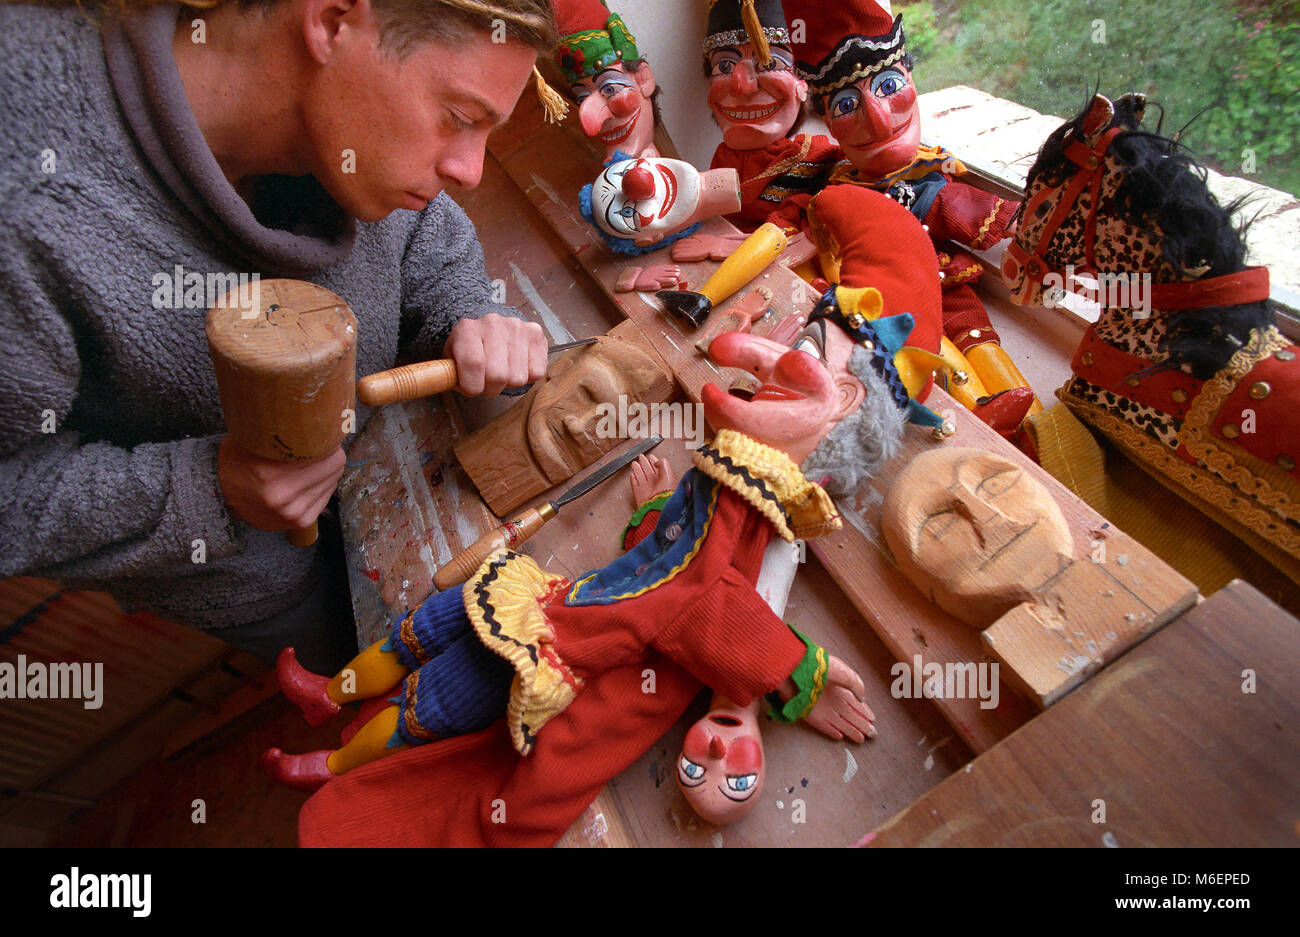 Devon, UK. Professor Mark Poulton making Punch and Judy puppets with wood carving tools. - Stock Image